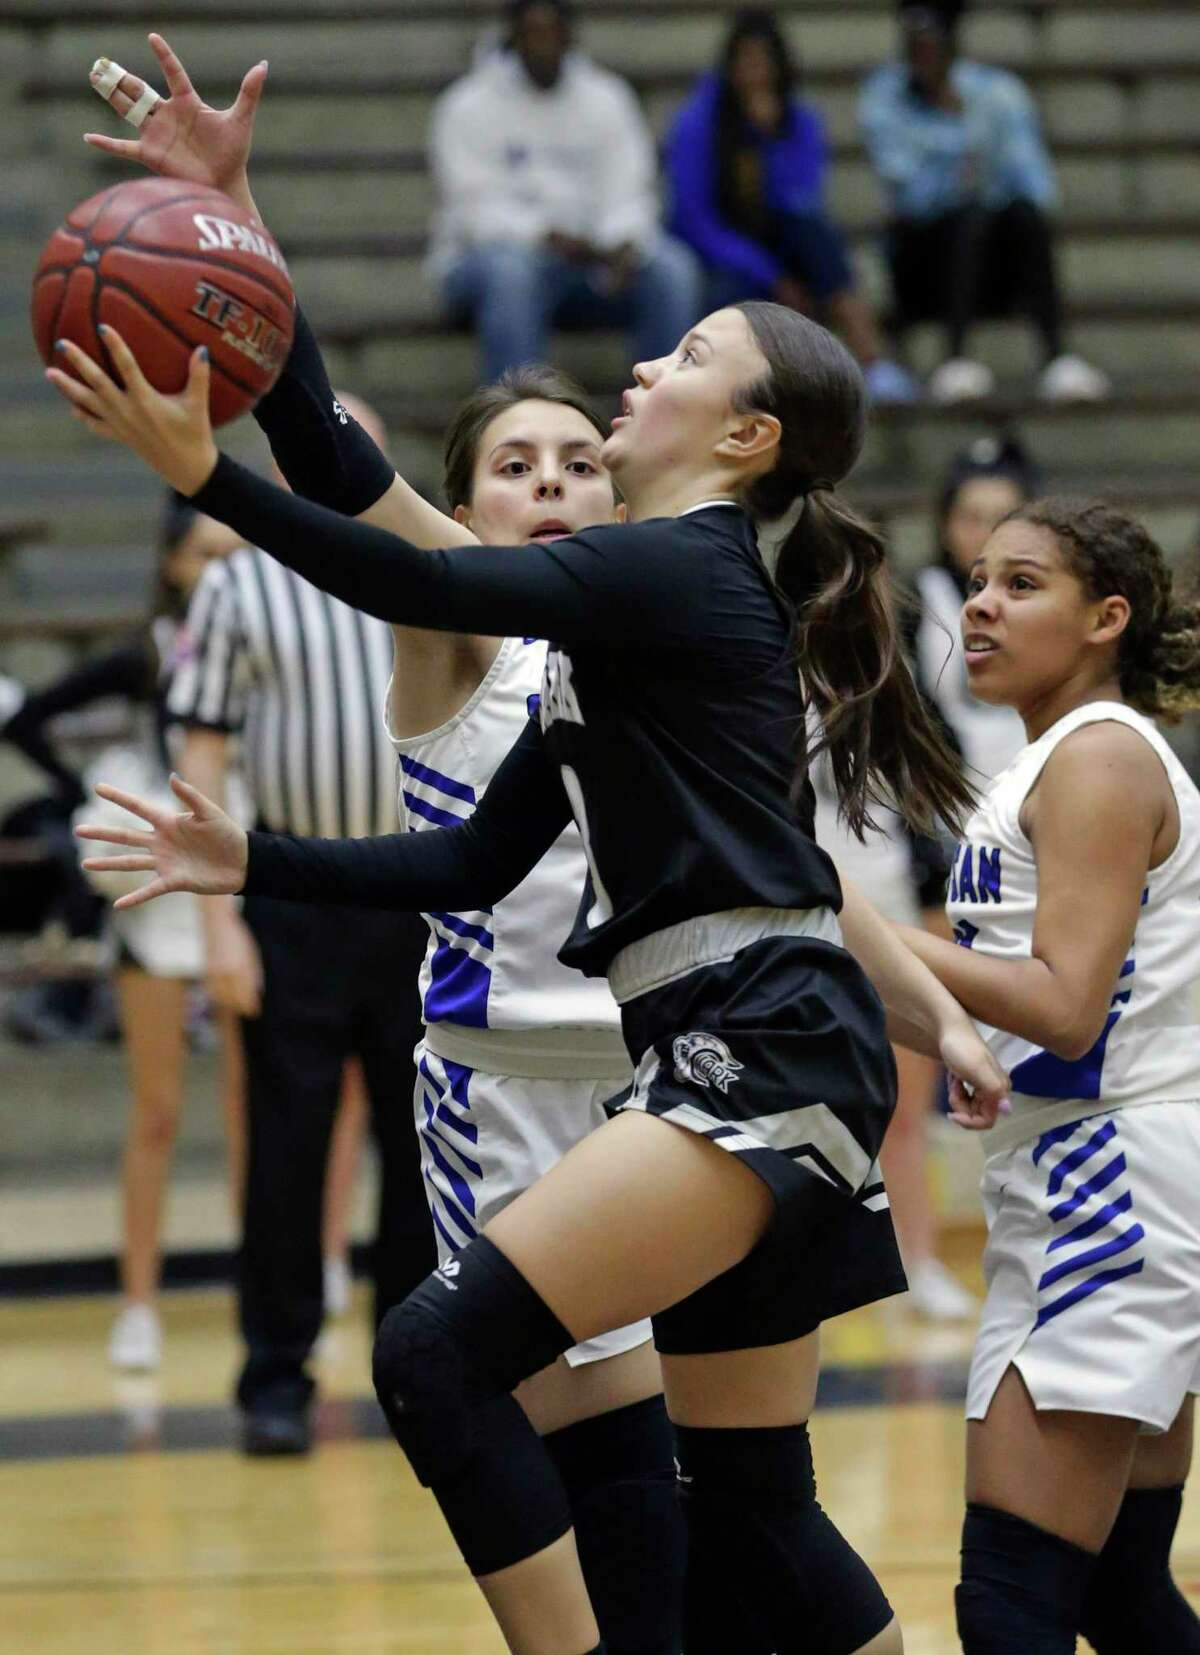 Cougar point guard Sydney Solitaire breaks through for a layup as South San plays Clark in first round girls basketball playoffs at Alamo Convocation Center on Feb. 18, 2020.